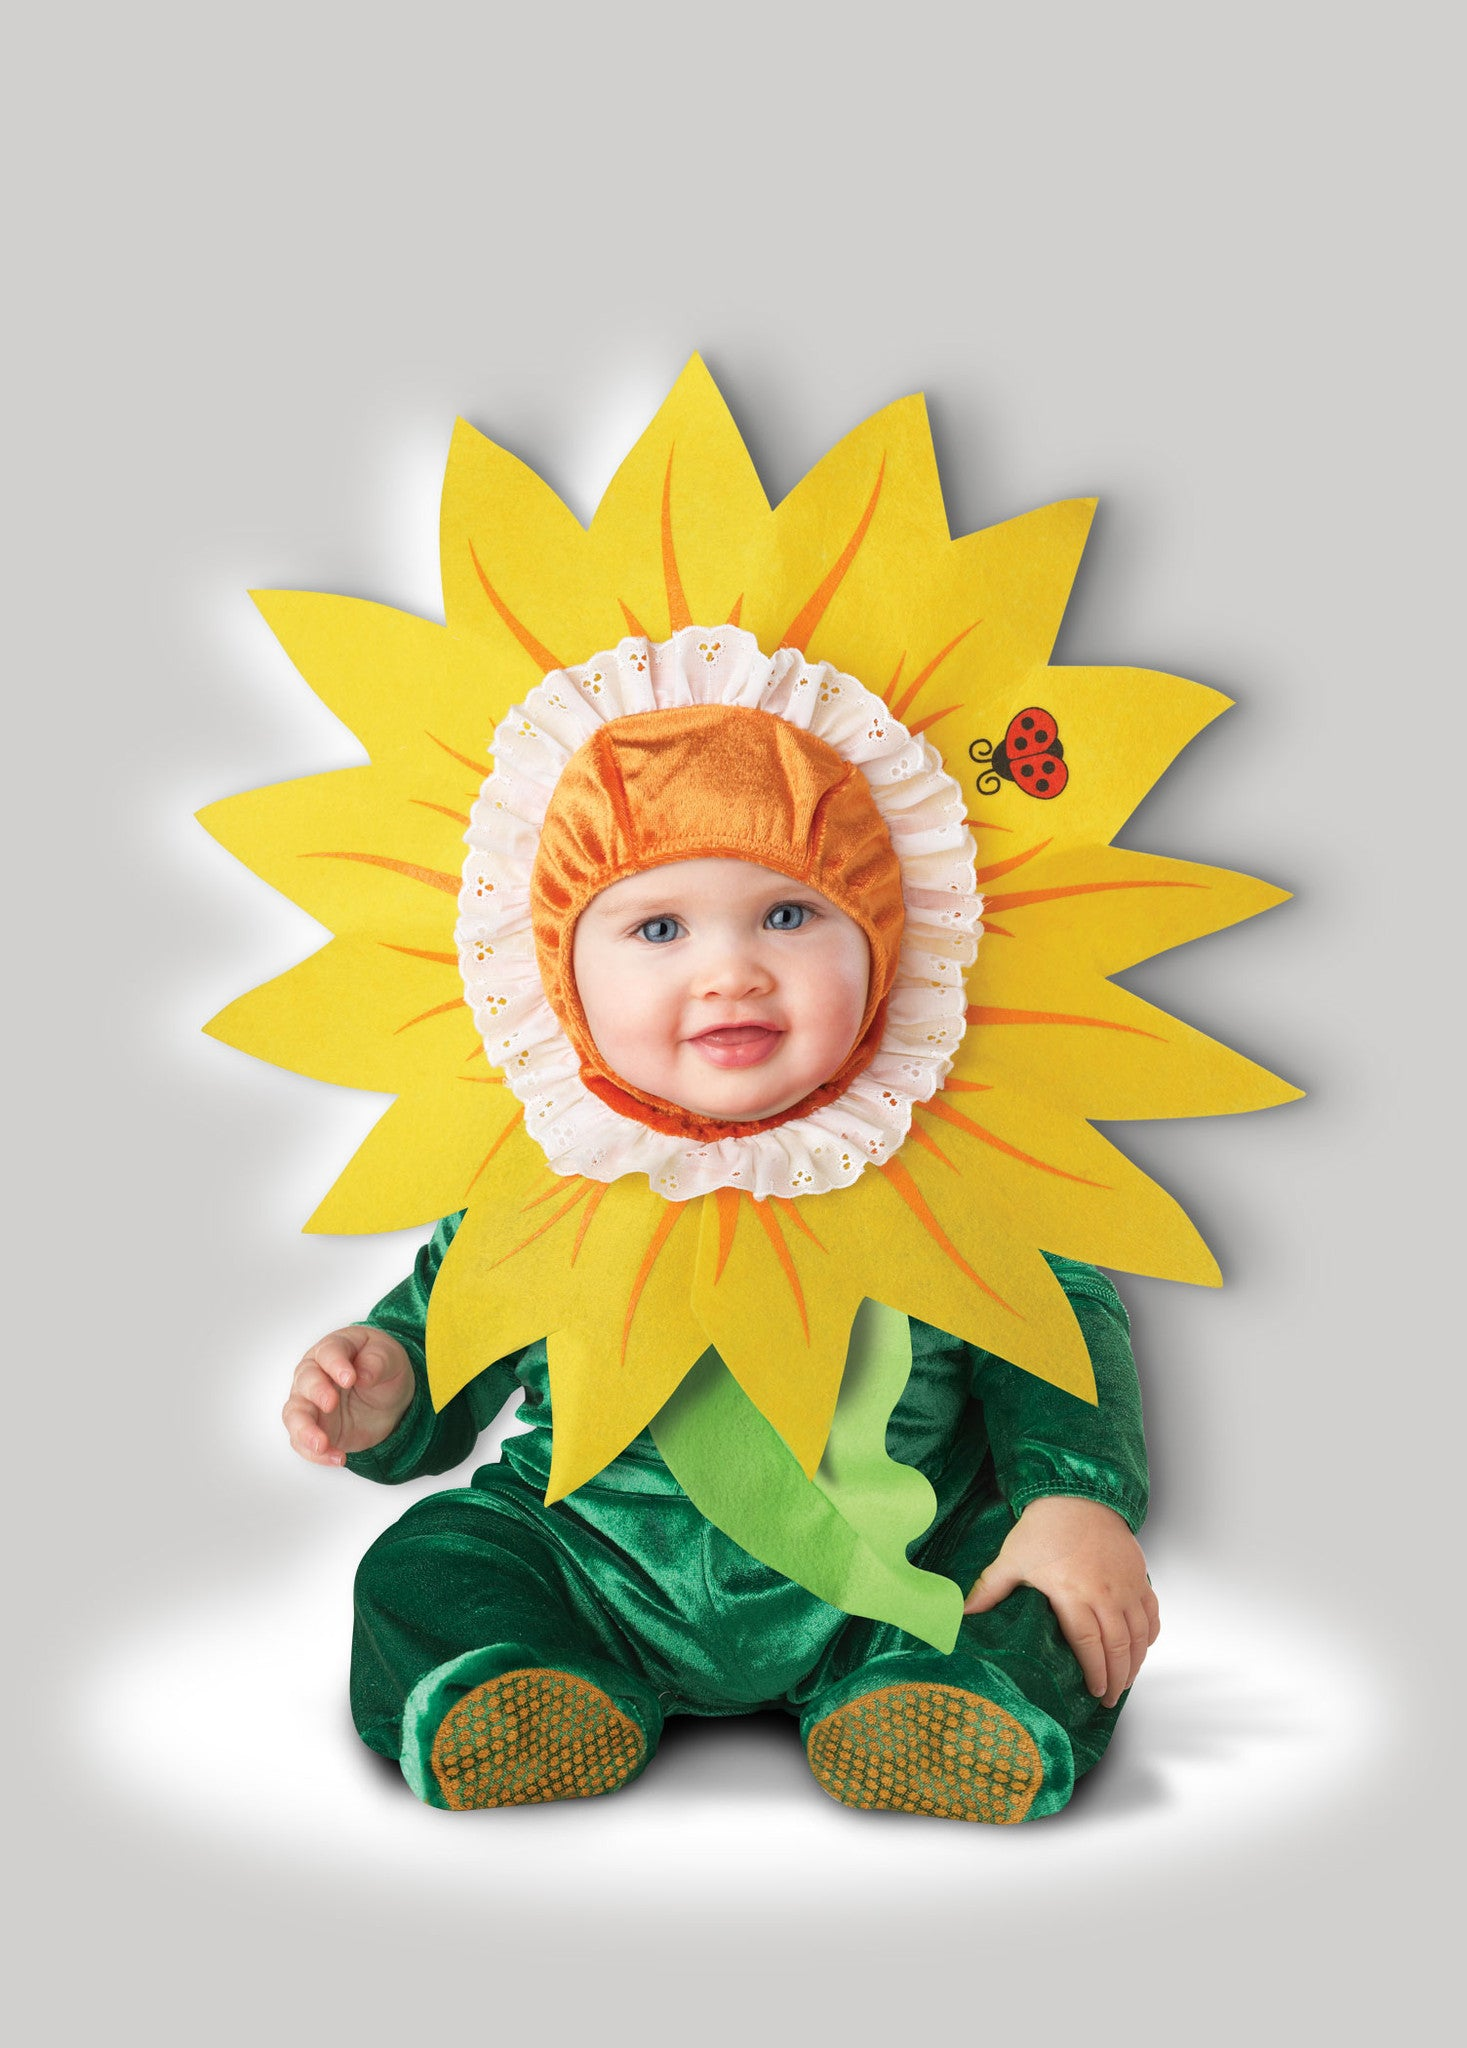 Silly Sunflower CK16008  sc 1 st  InCharacter Costumes & Cute Sunflower Baby Costume u2013 InCharacter Costumes